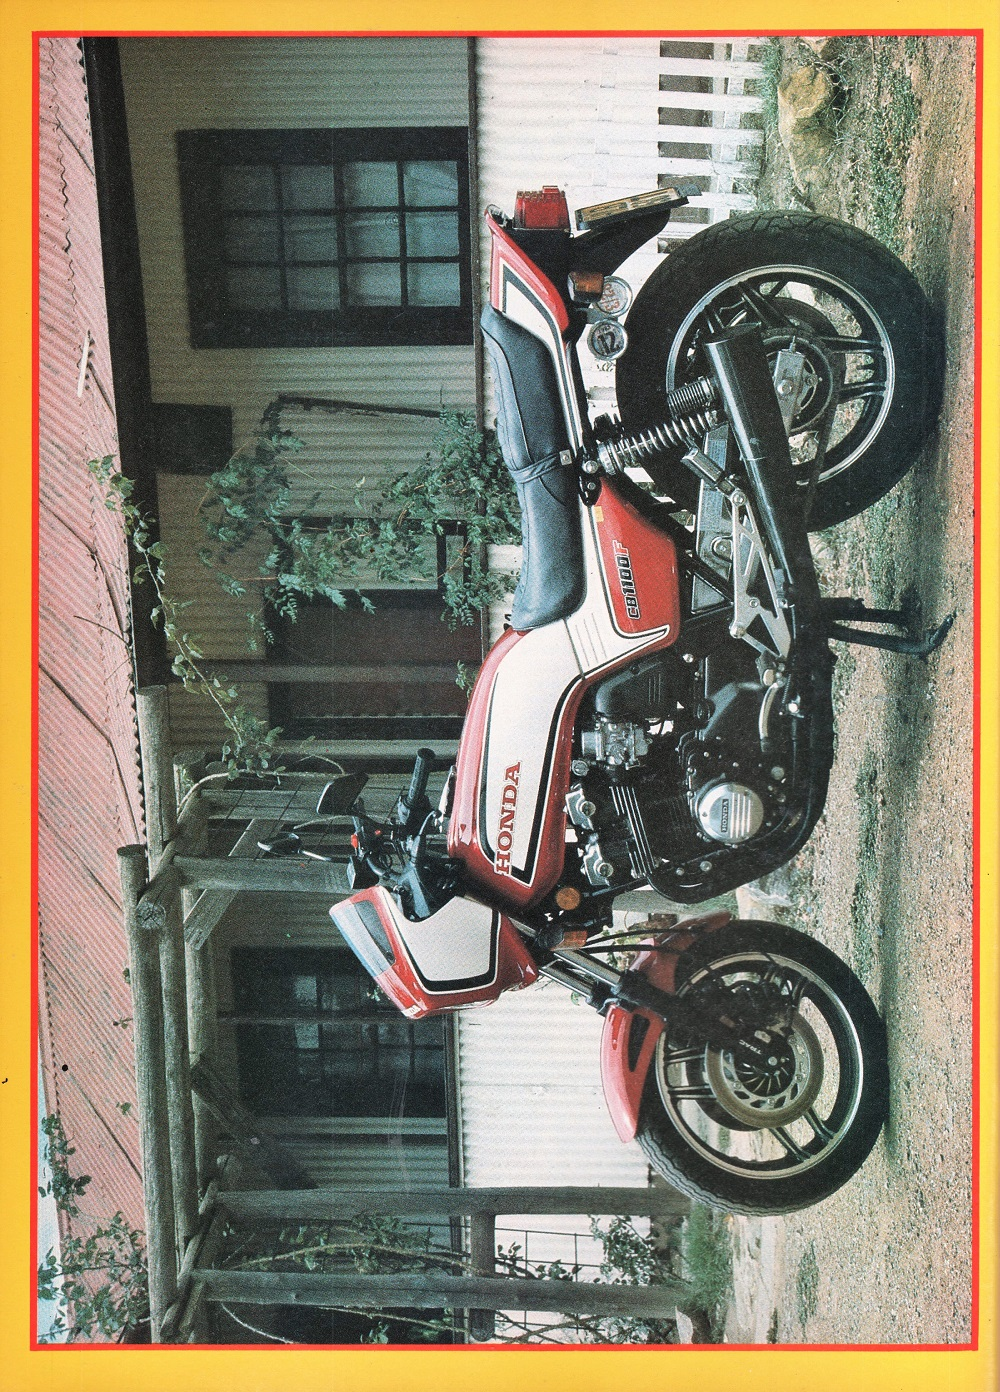 1983 Honda CB1100F road test.1.jpg